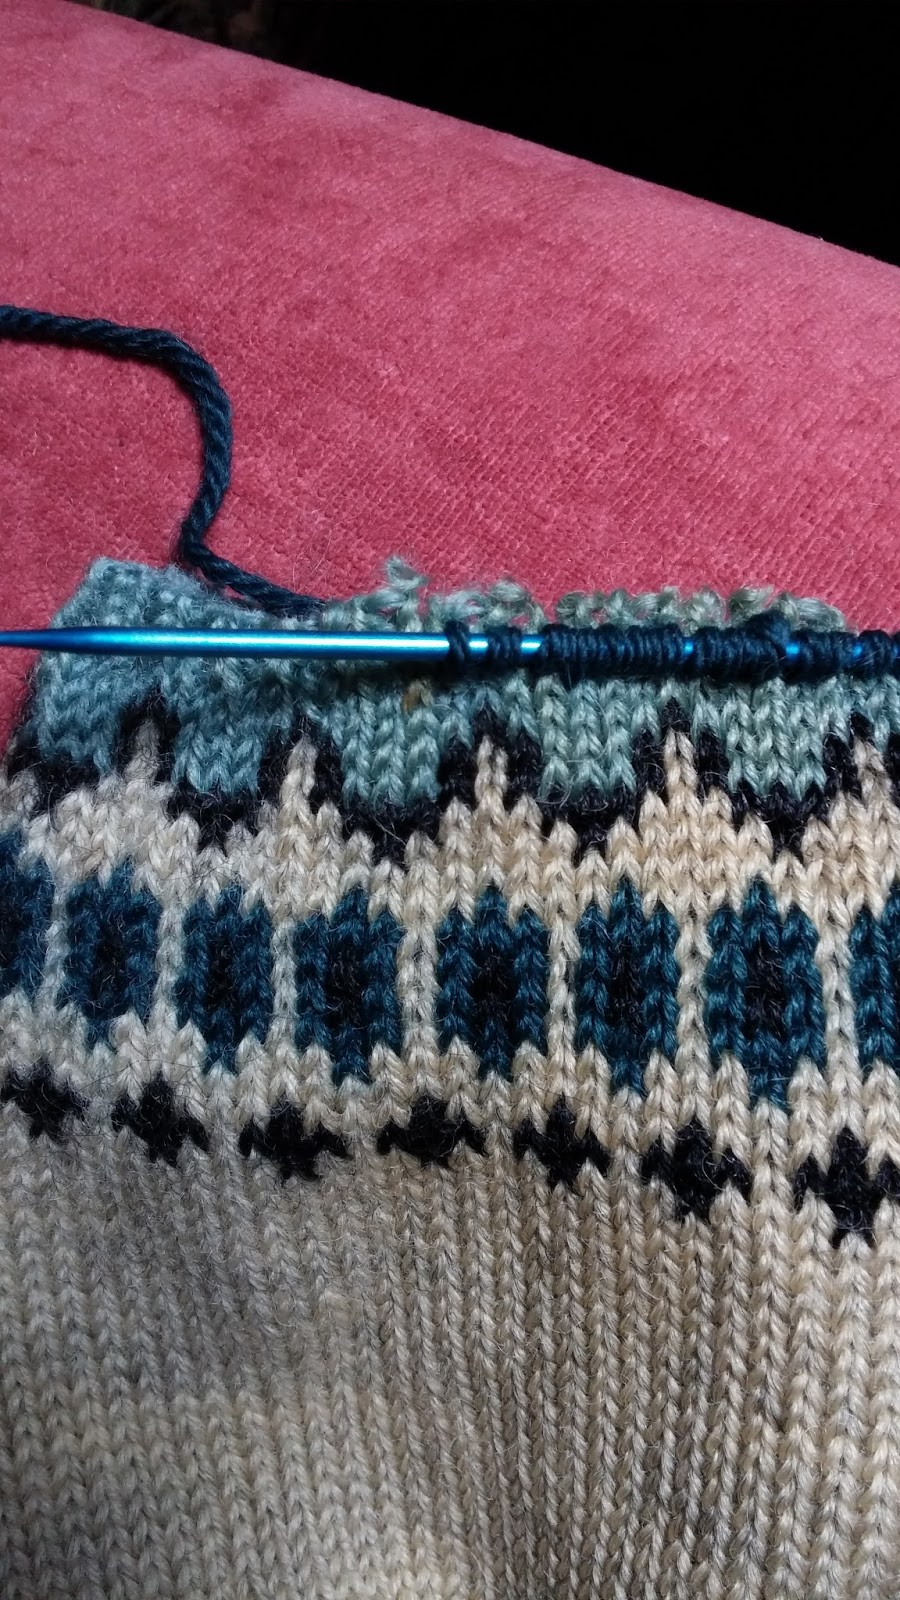 Knitting Pick Up Stitches With Crochet Hook : Mary Lachman Design